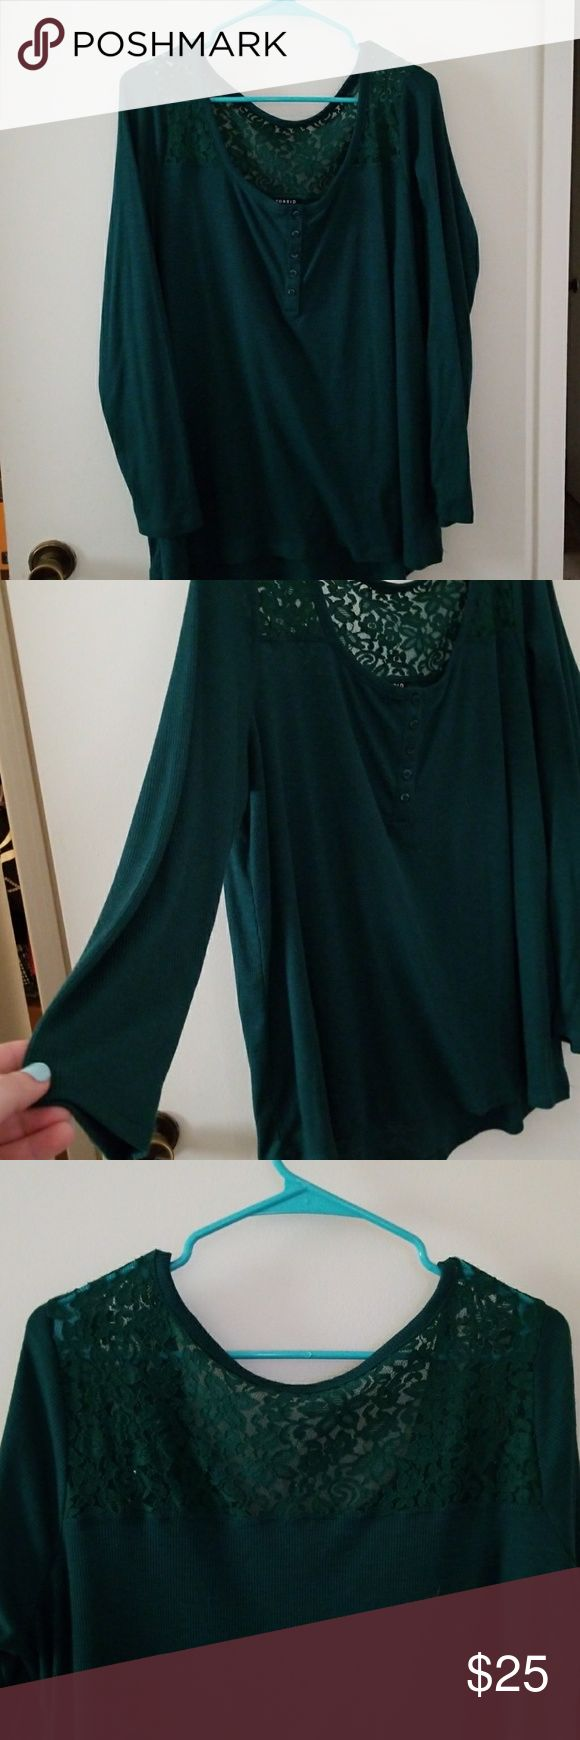 Torrid long sleeve teal shirt Long sleeve teal shirt with lace on the shoulders and back, as seen in the photos. Worn once. One dog home. torrid Tops Tees - Long Sleeve